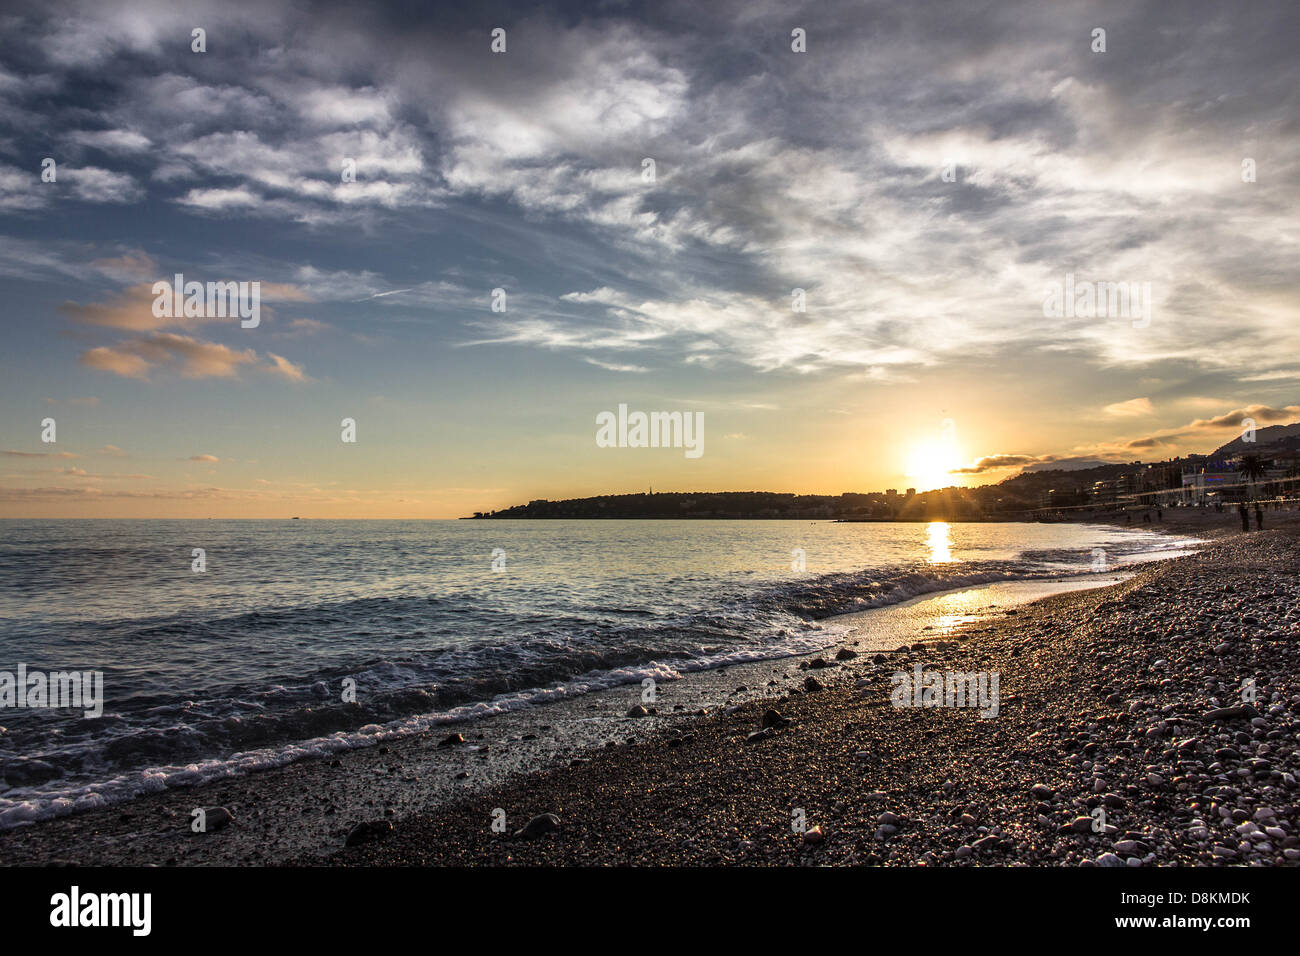 Winter seascape landscape Cote d'Azur Stock Photo